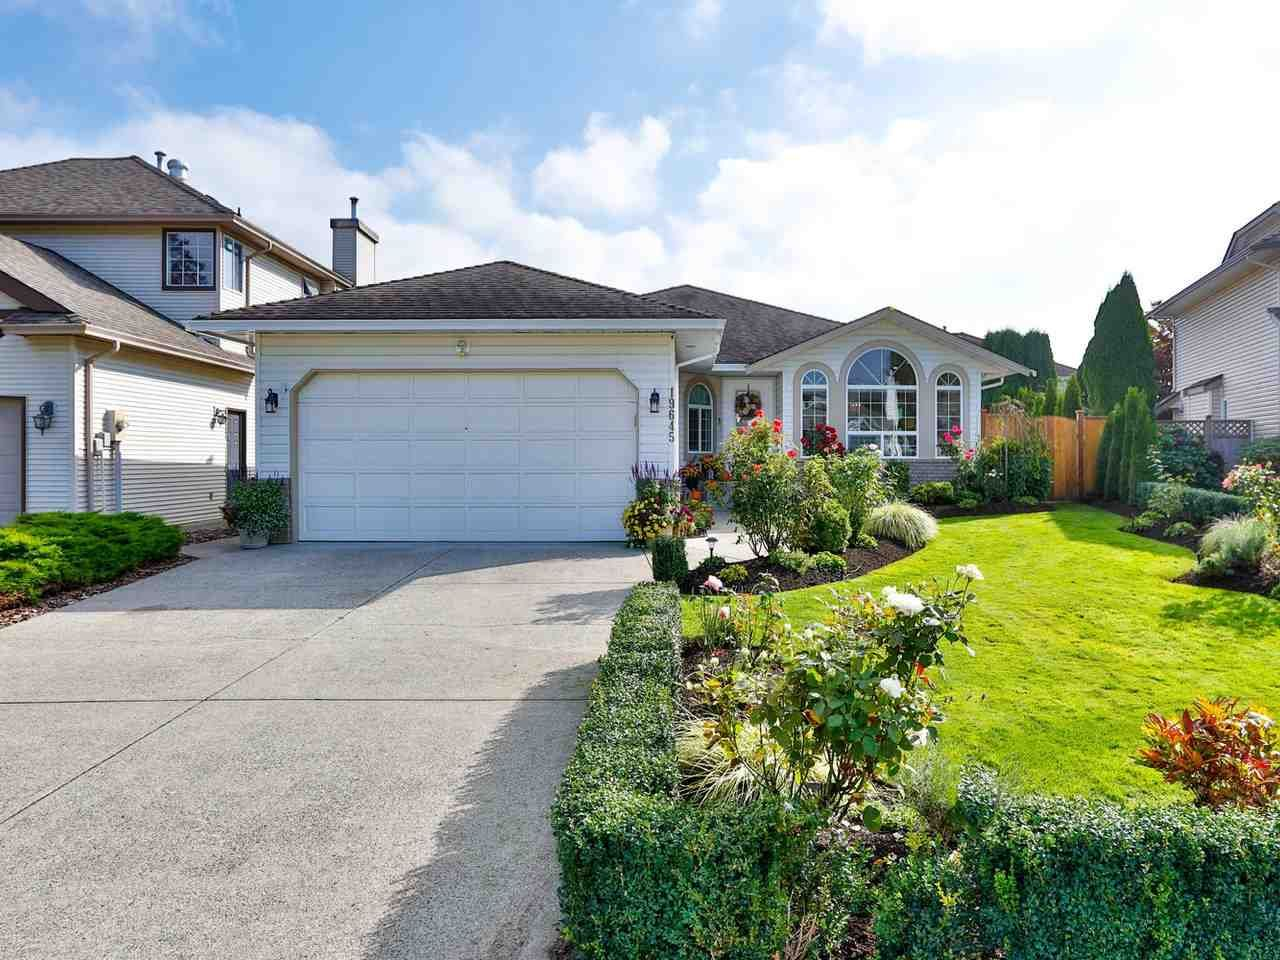 Photo 1: Photos: 19645 SOMERSET Drive in Pitt Meadows: Mid Meadows House for sale : MLS®# R2505880